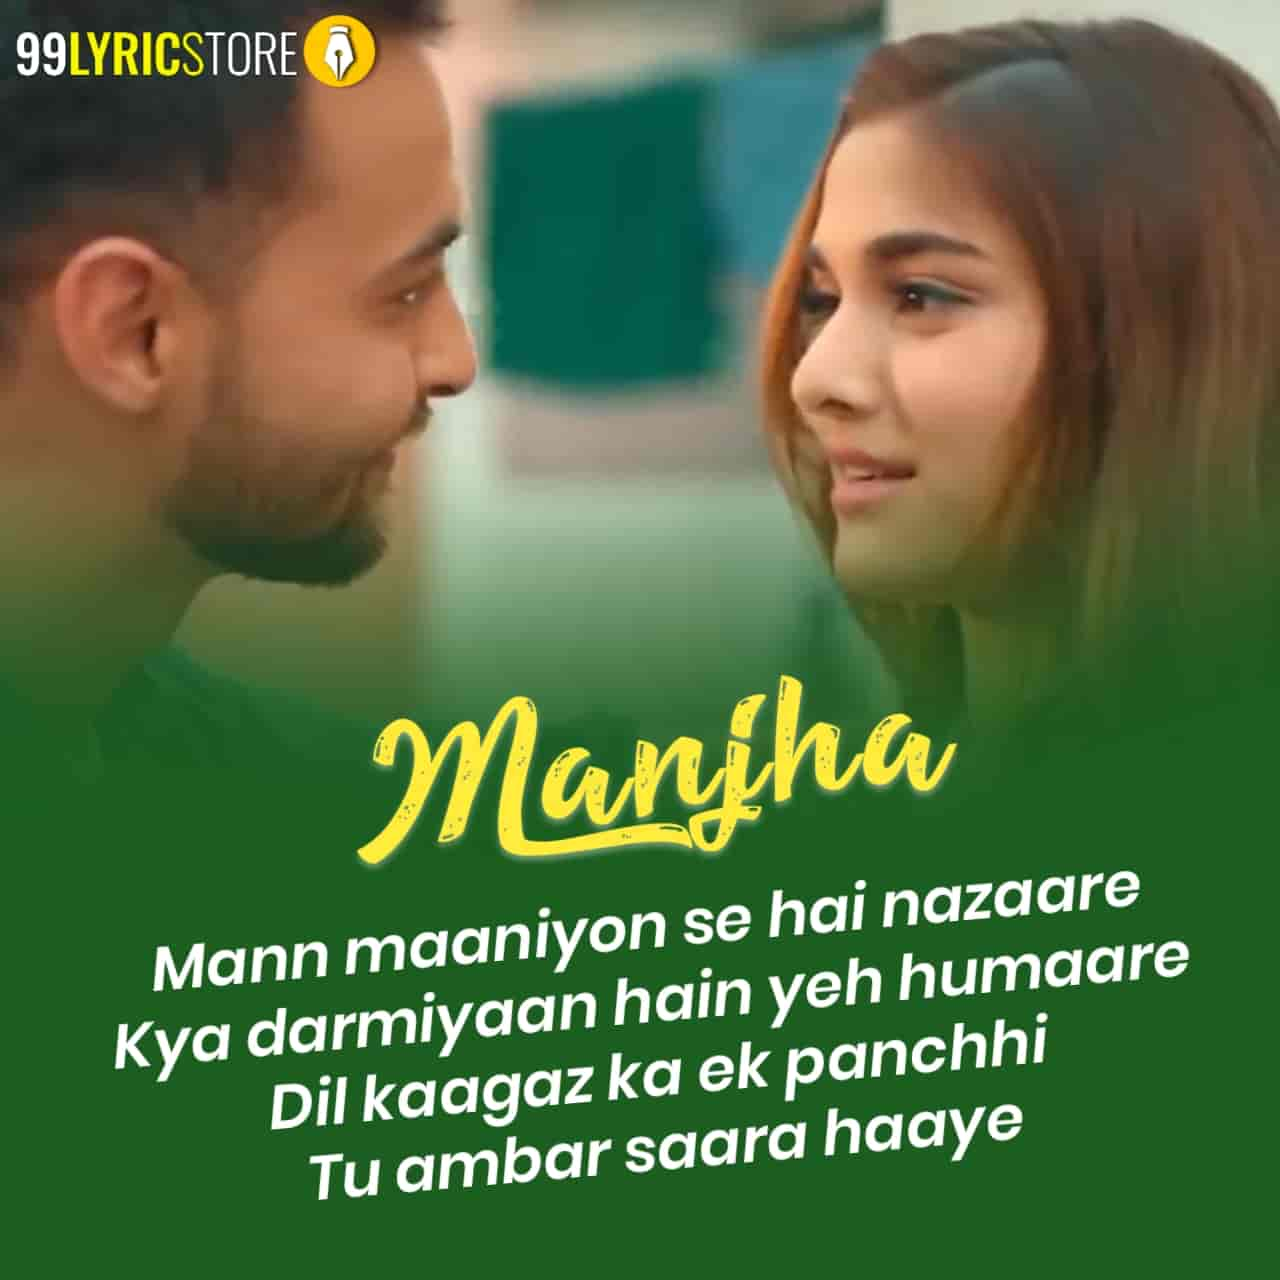 Manjha Song Image By vishal Mishra starring Sainee Manjrekar and Aayush Sharma